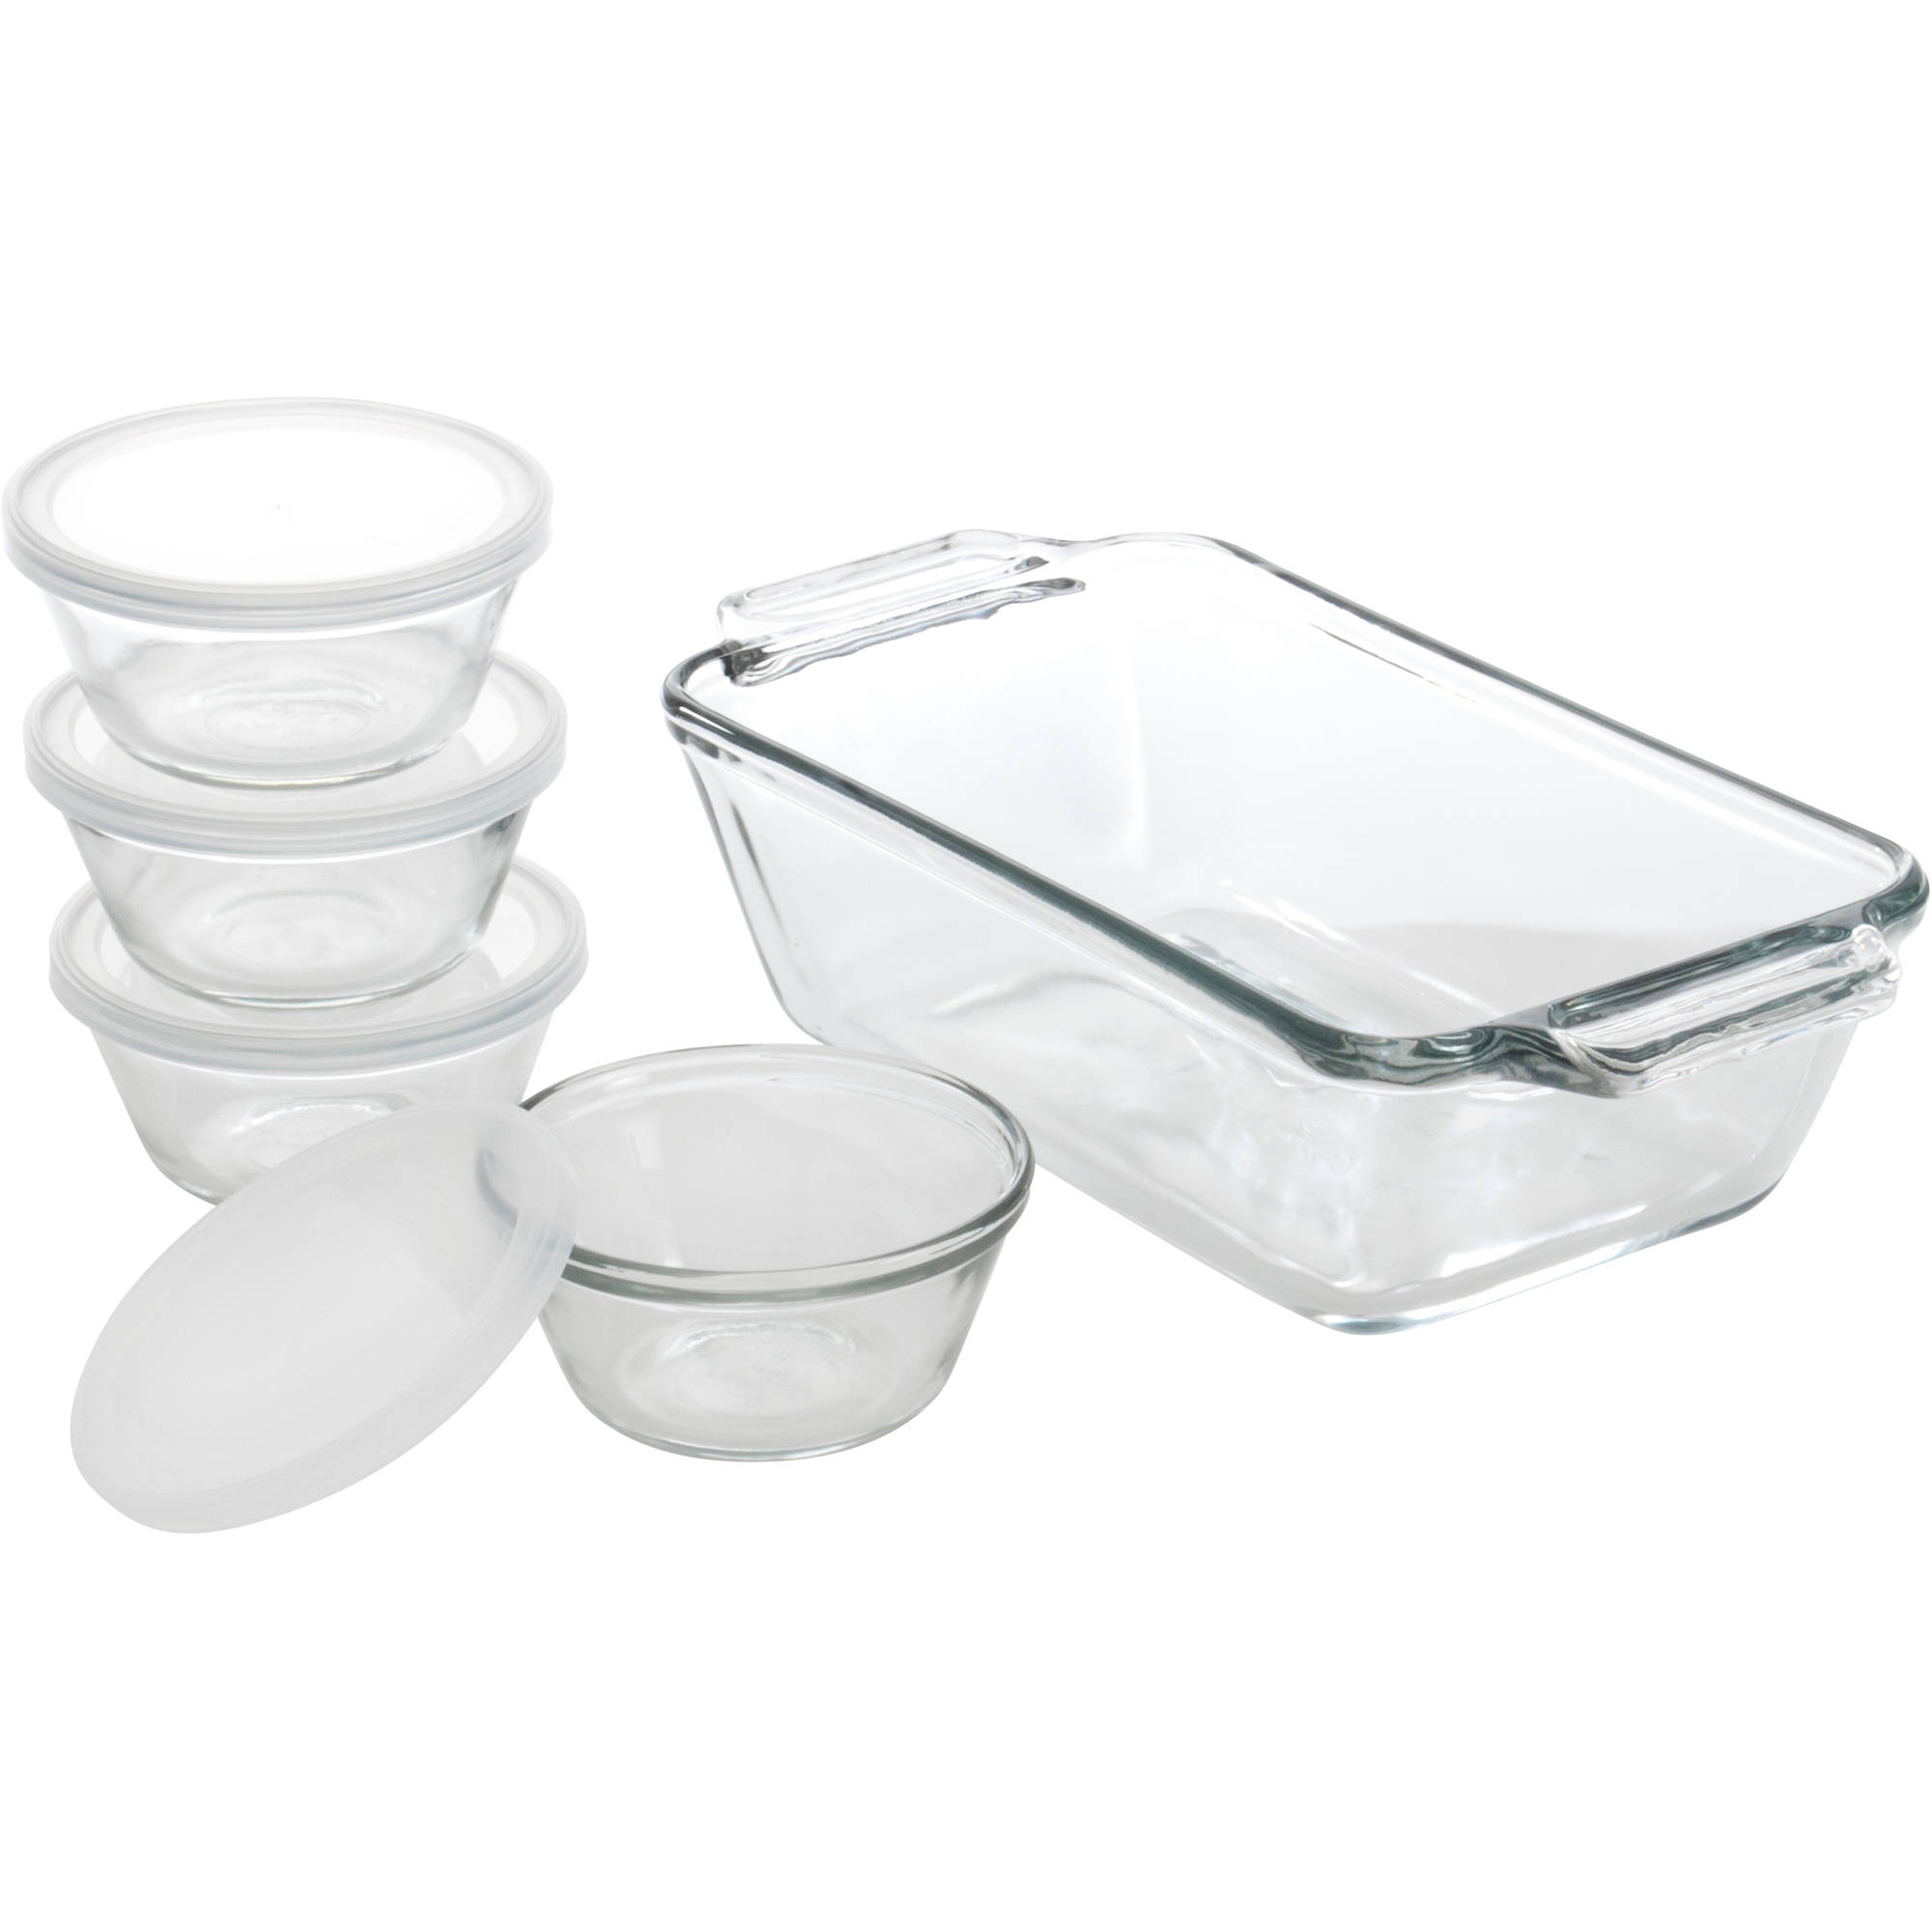 Anchor Hocking 15-Piece Bakware Set, Clear